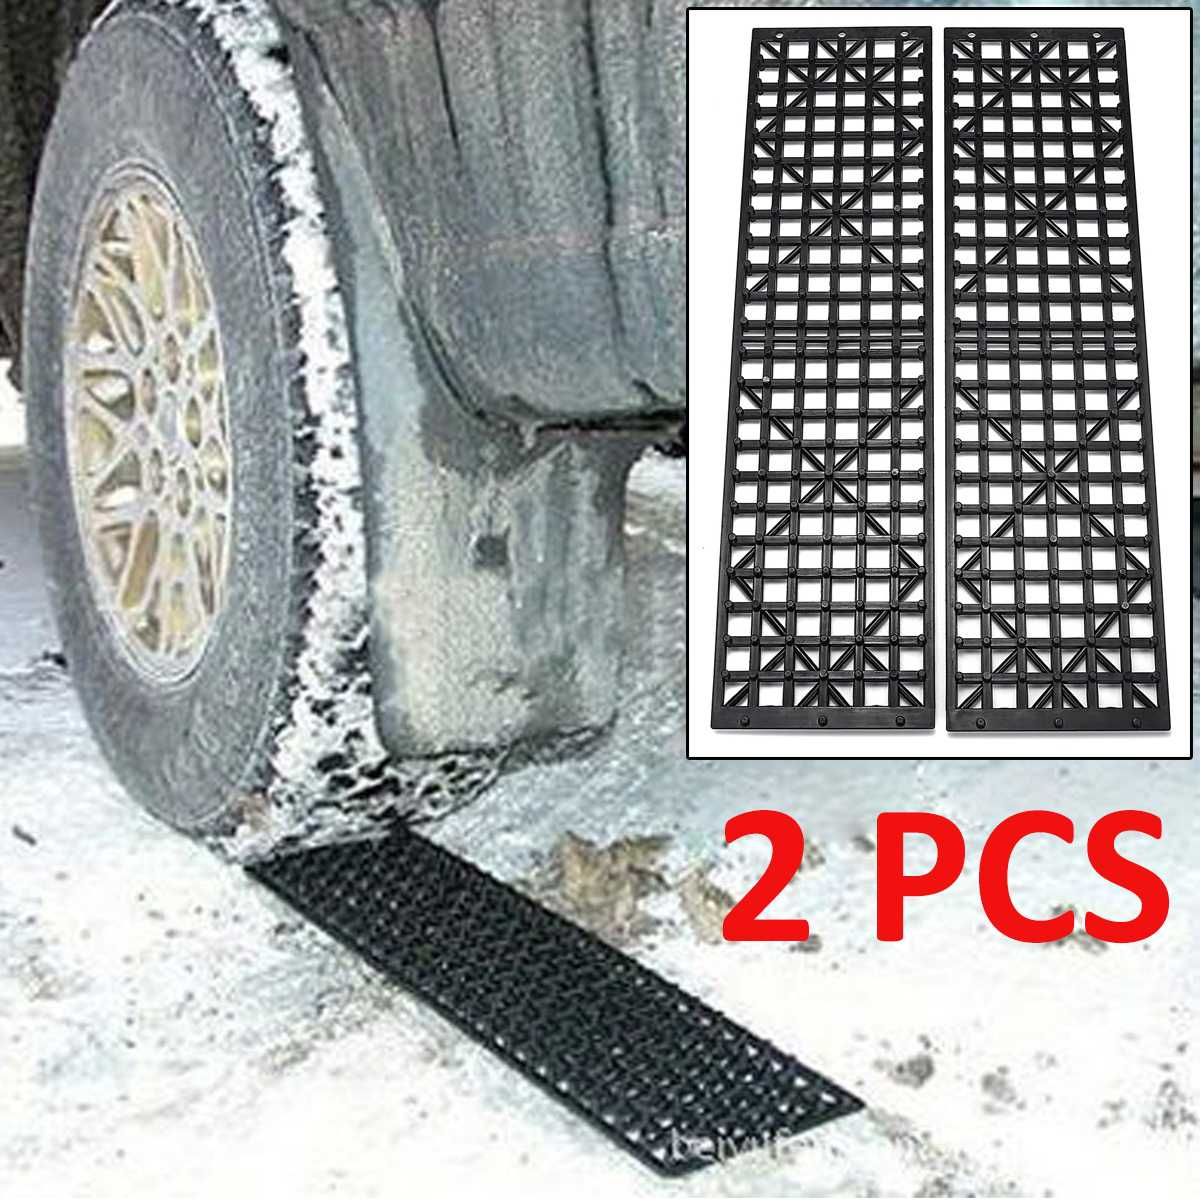 2Pcs Car Snow Ice Mud Road Clearer Auto Vehicle Truck Winter Snow Chains Tires Recovery Traction Mat Wheel Strap Tracks(China)